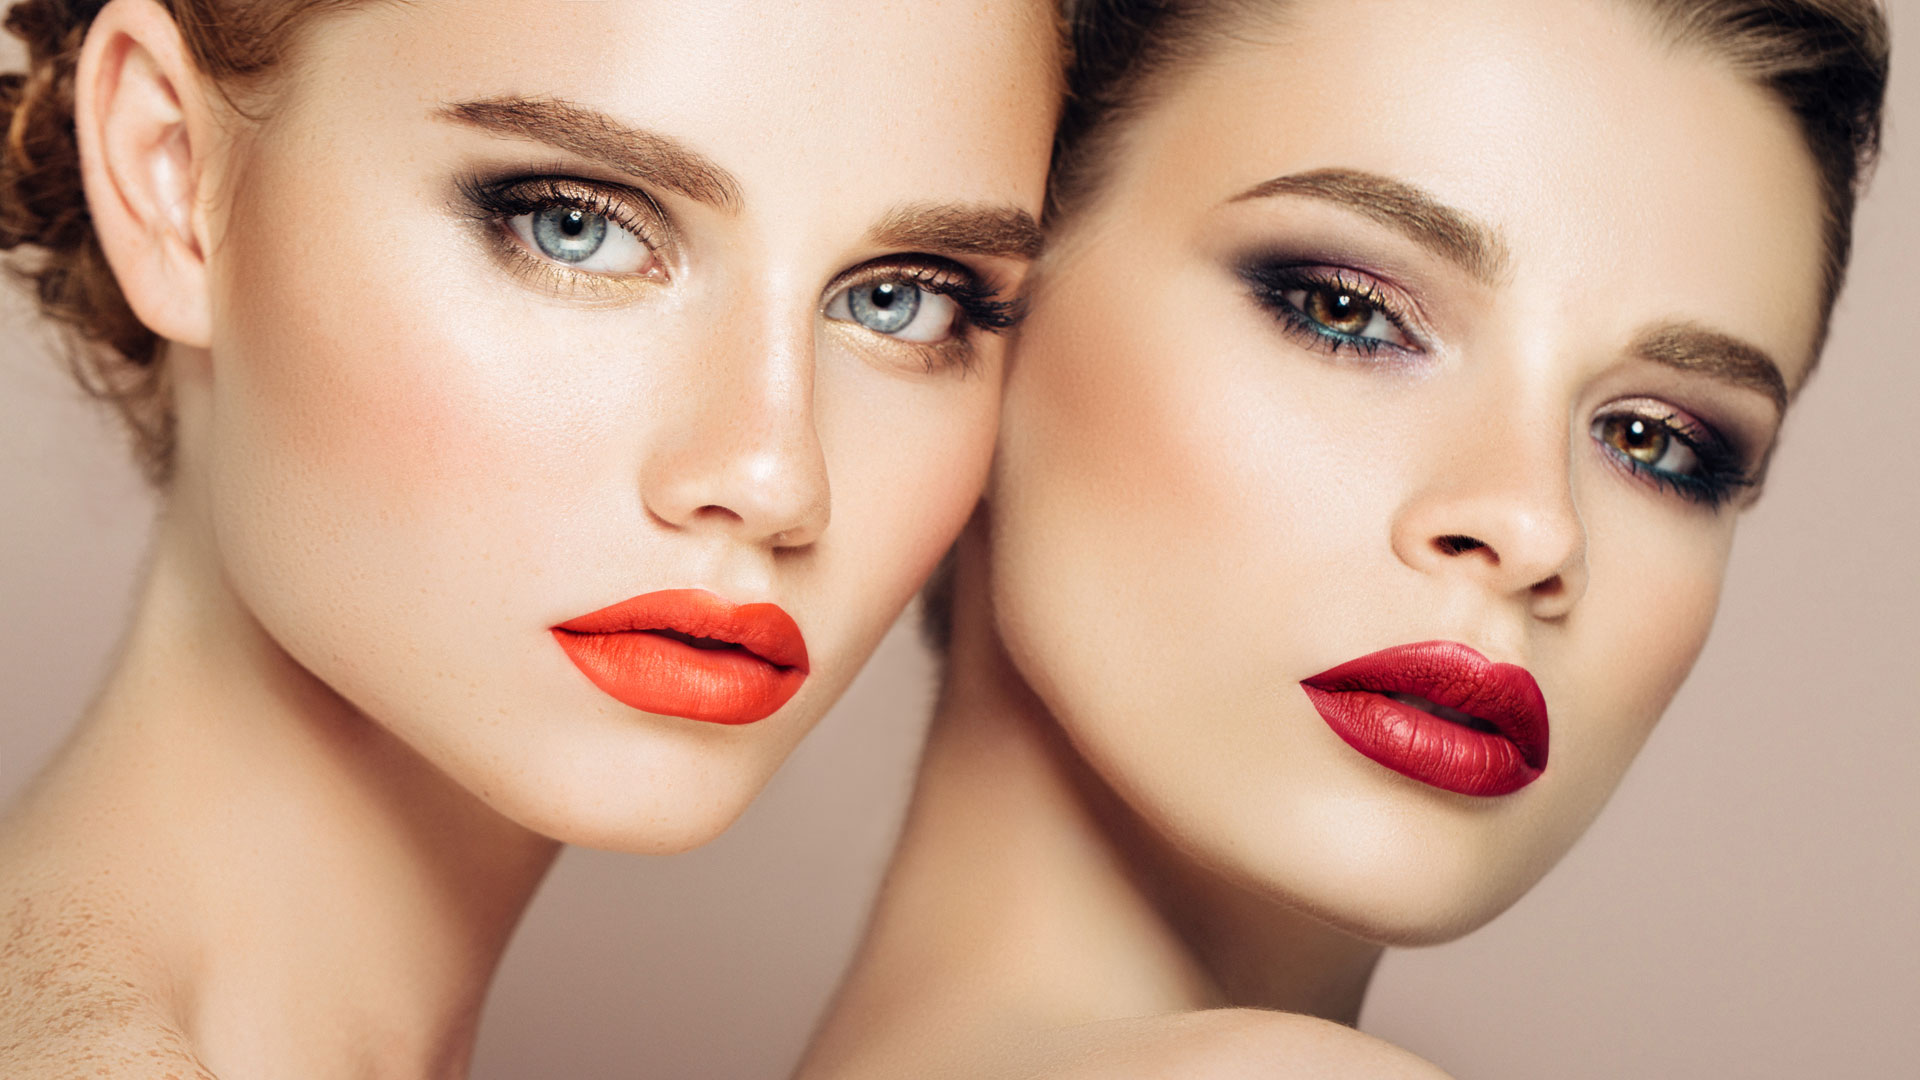 How to quickly and painlessly rejuvenate the skin with mesothreads: features of the procedure 6